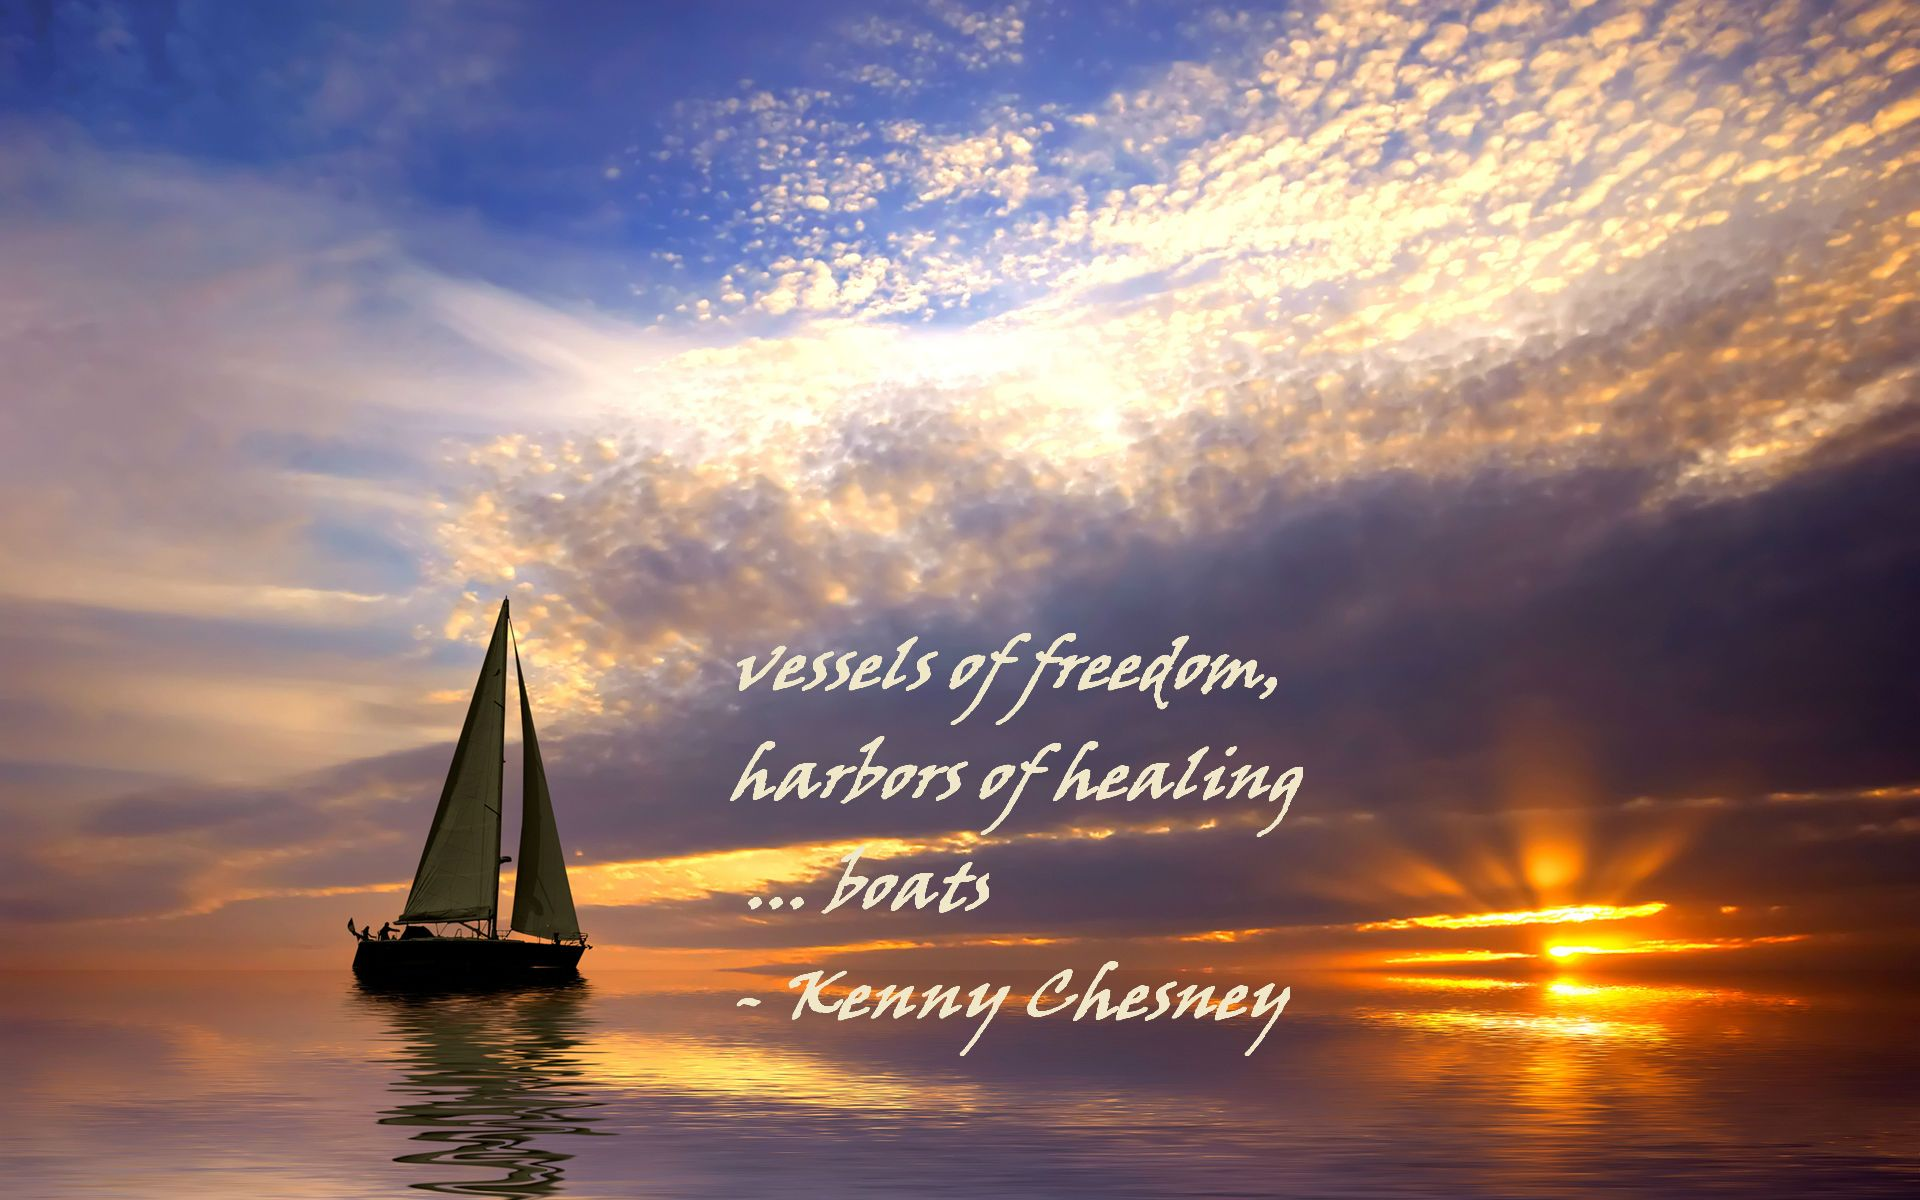 Boats By Kenny Chesney With Images Beautiful Sunset Boat Sailing Trips